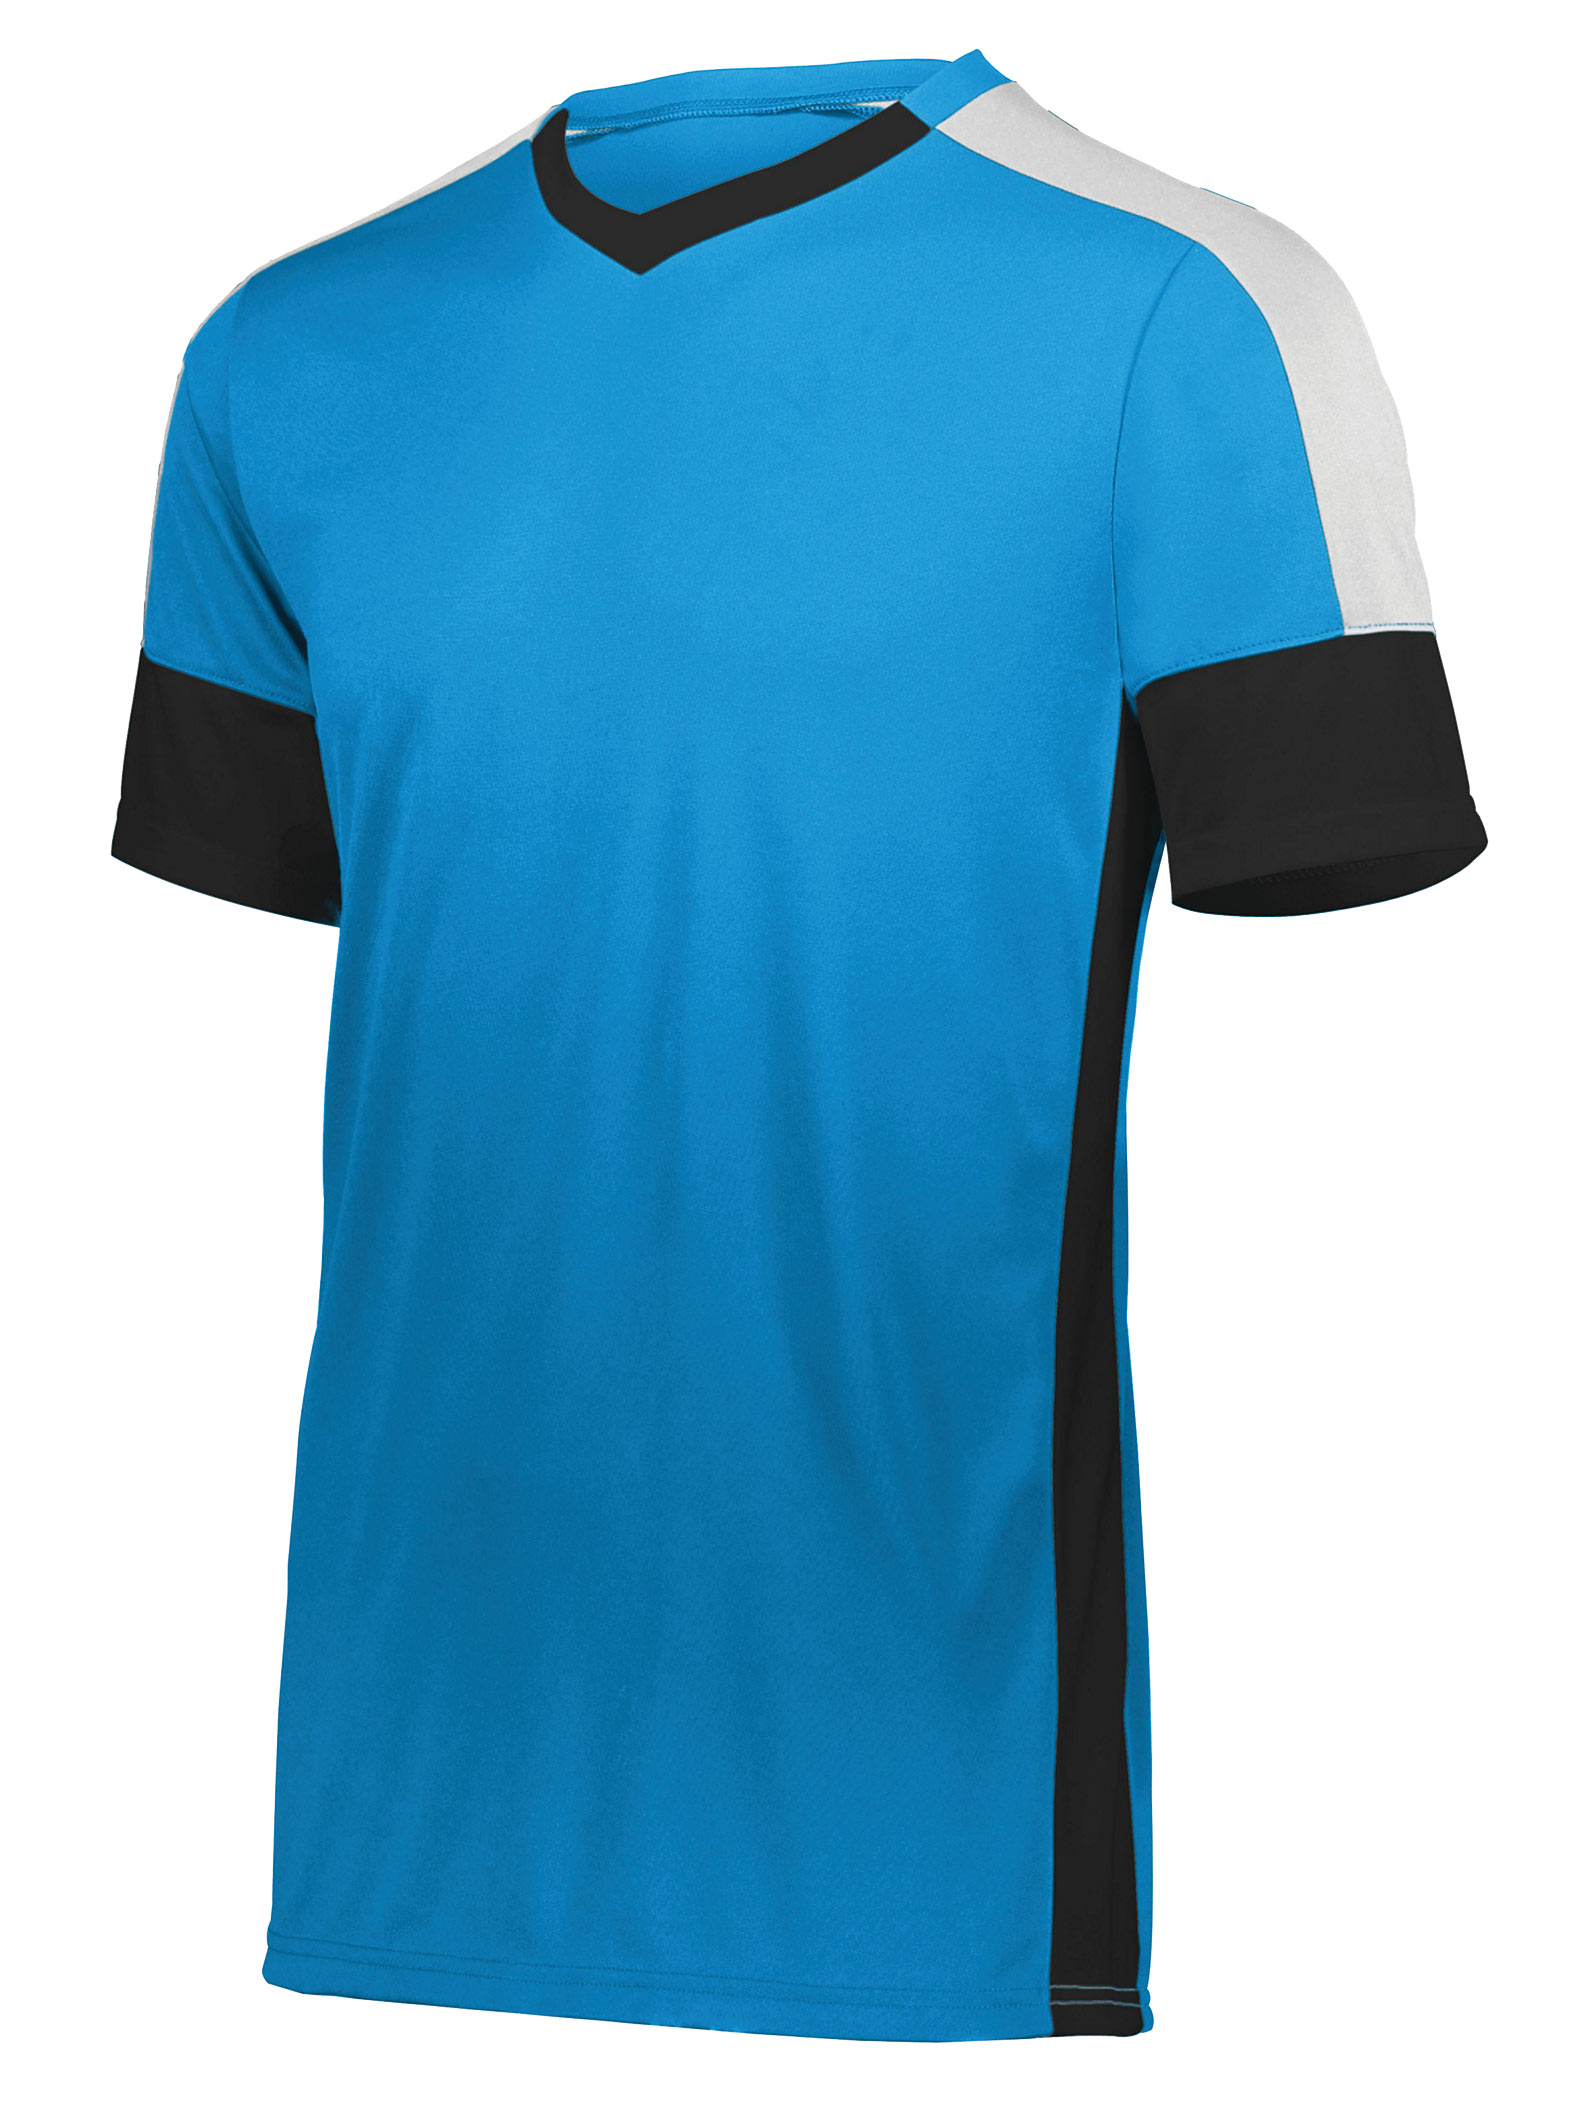 High Five Adult Wembley Soccer Jersey